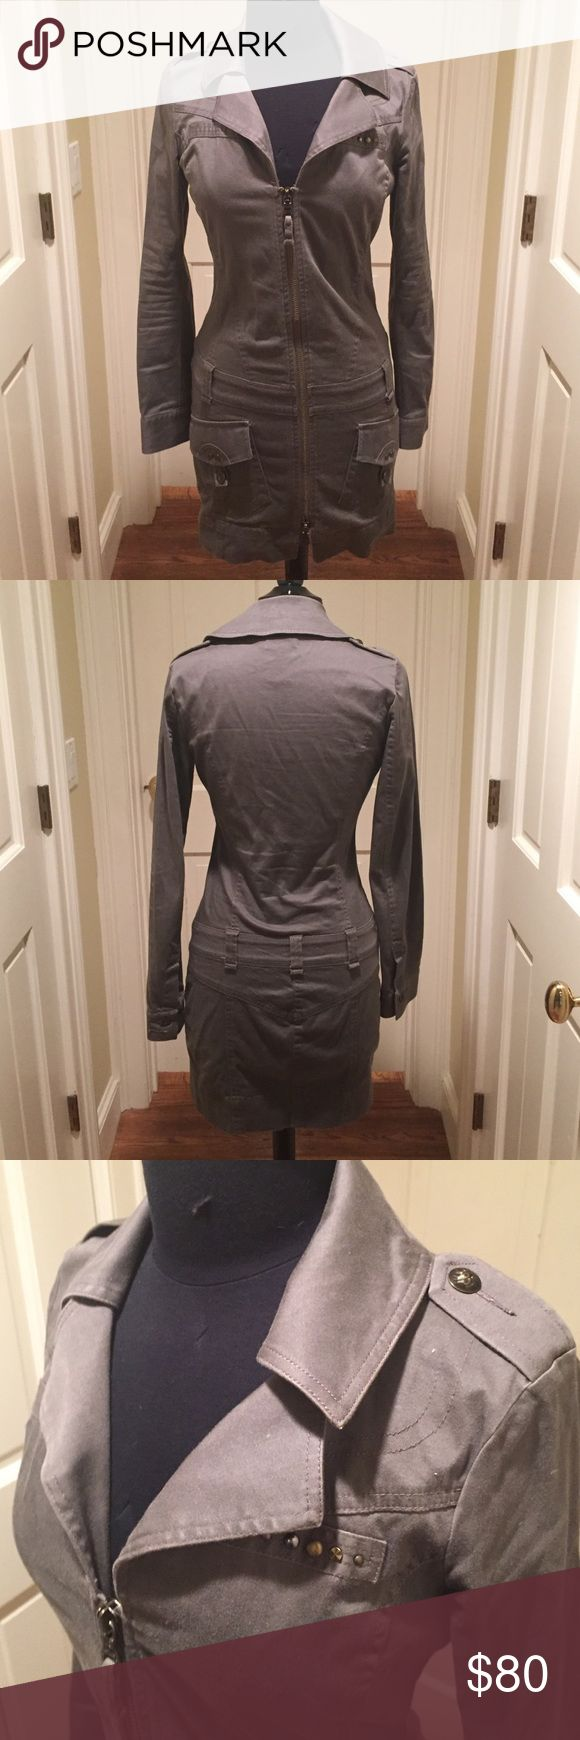 Authentic Diesel Coat/Dress Diesel Coat or you can wear as a dress with a belt. Very good condition with nice detail. Army greenish gray color. Goes down to the thigh. Diesel Jackets & Coats